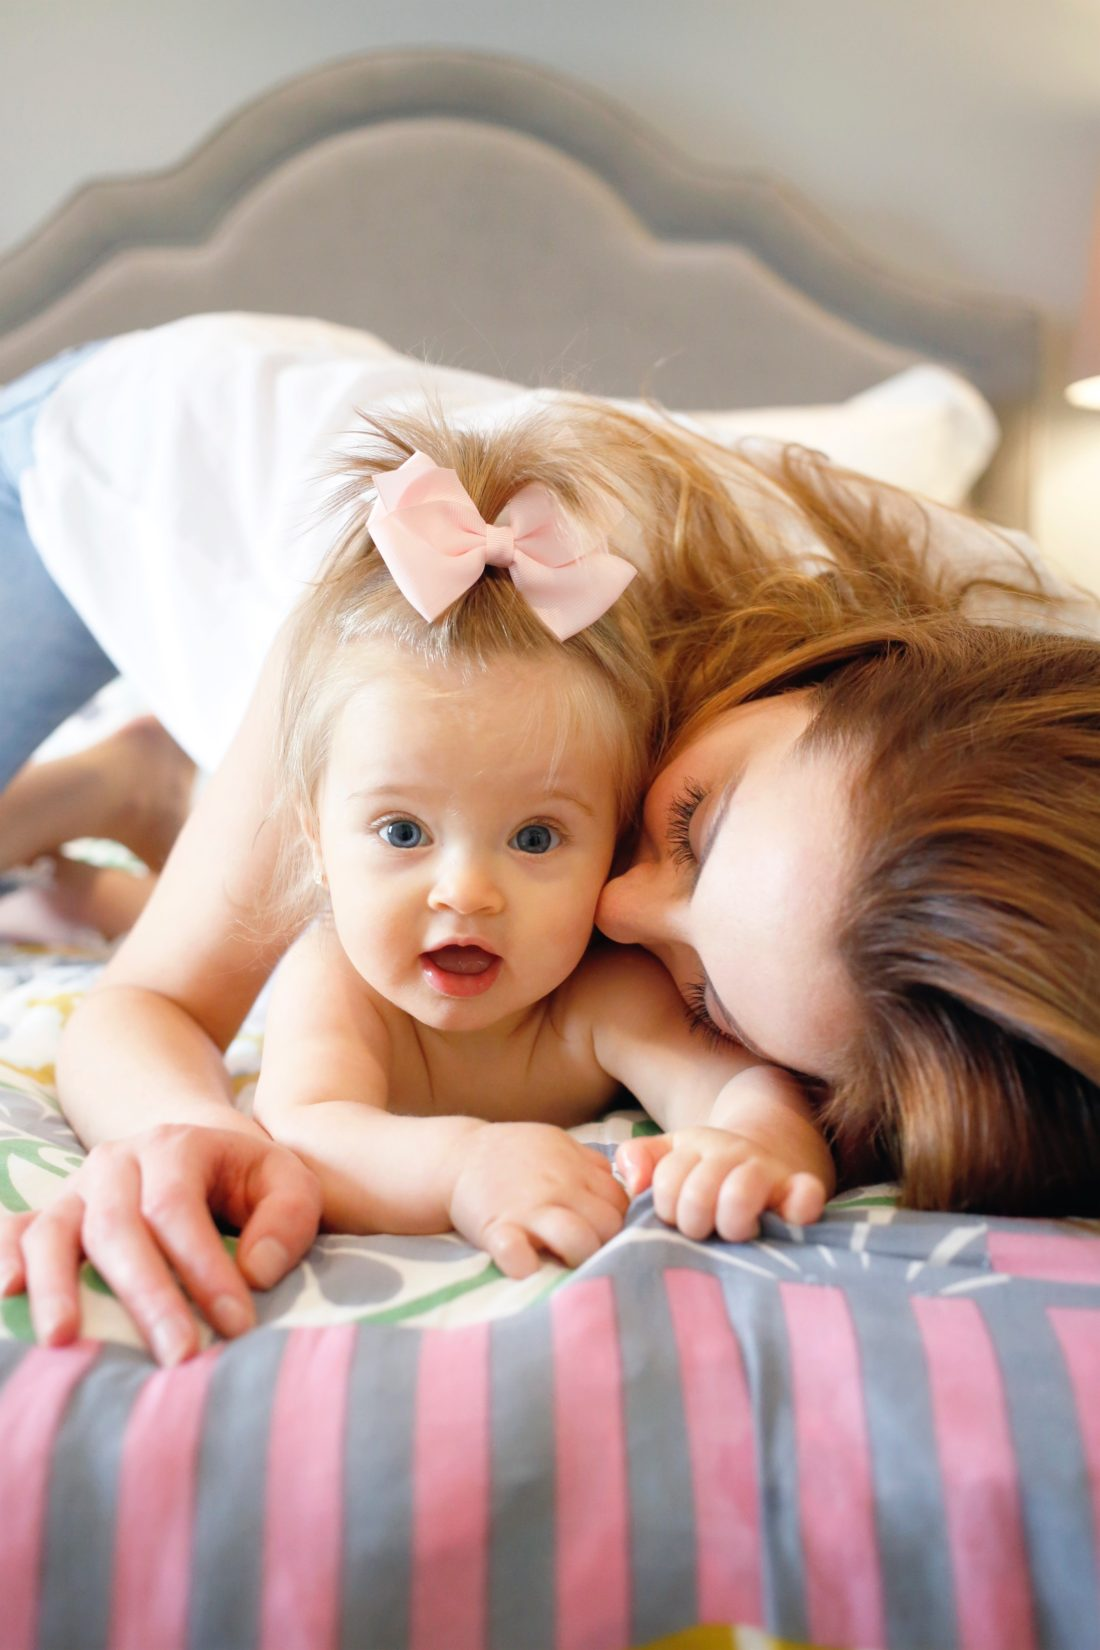 Eva Amurri Martino of Happily Eva After blog snuggling with her daughter Marlowe who wears her hair in a pink bow